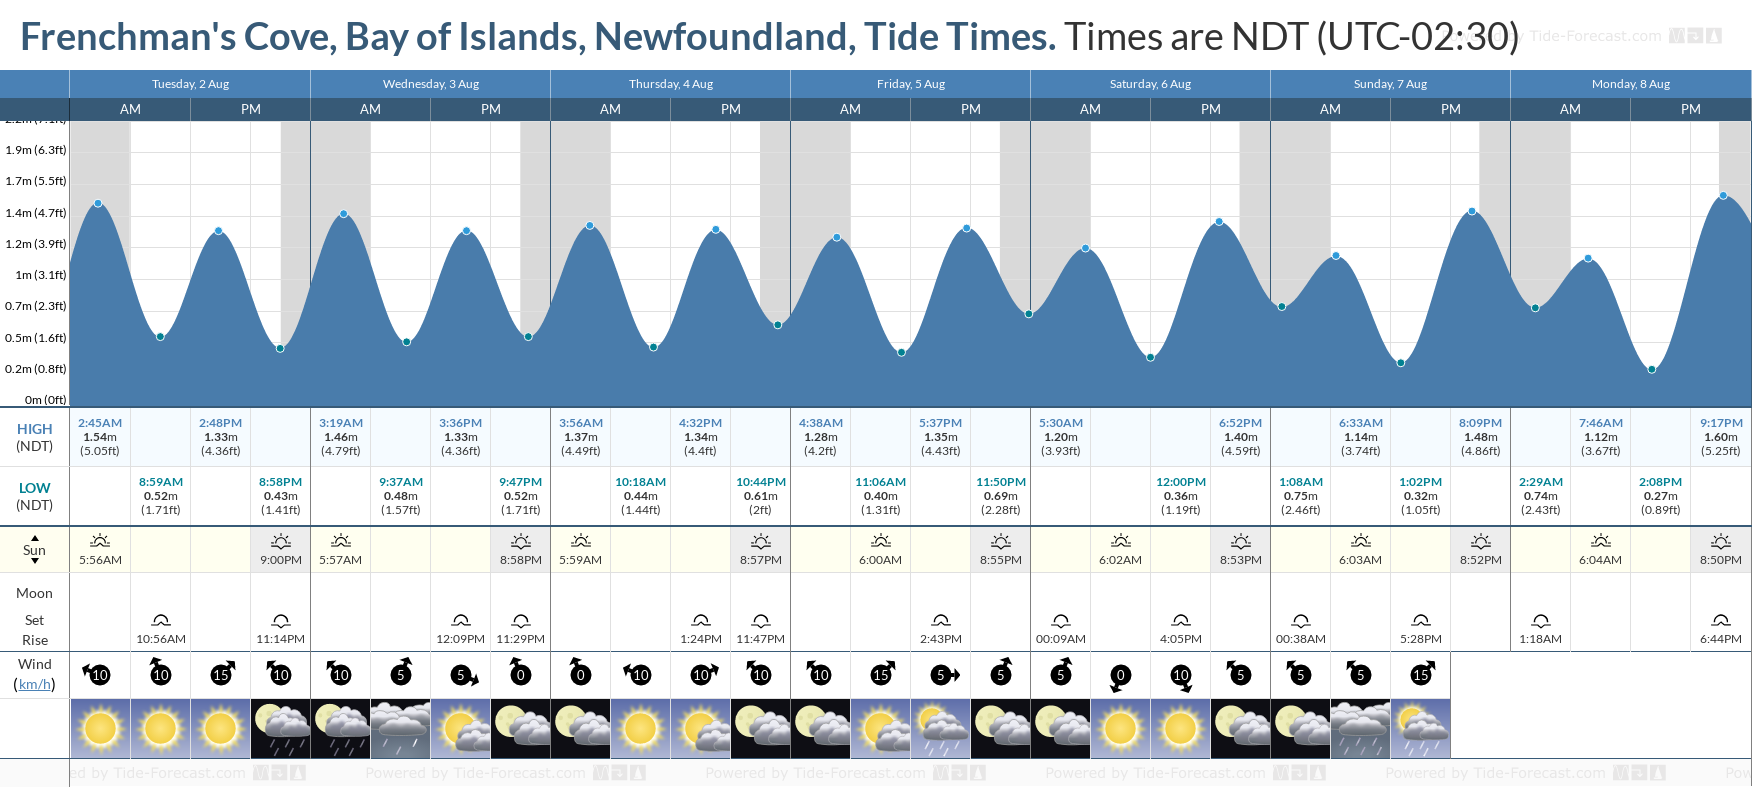 Frenchman's Cove, Bay of Islands, Newfoundland Tide Chart including high and low tide tide times for the next 7 days